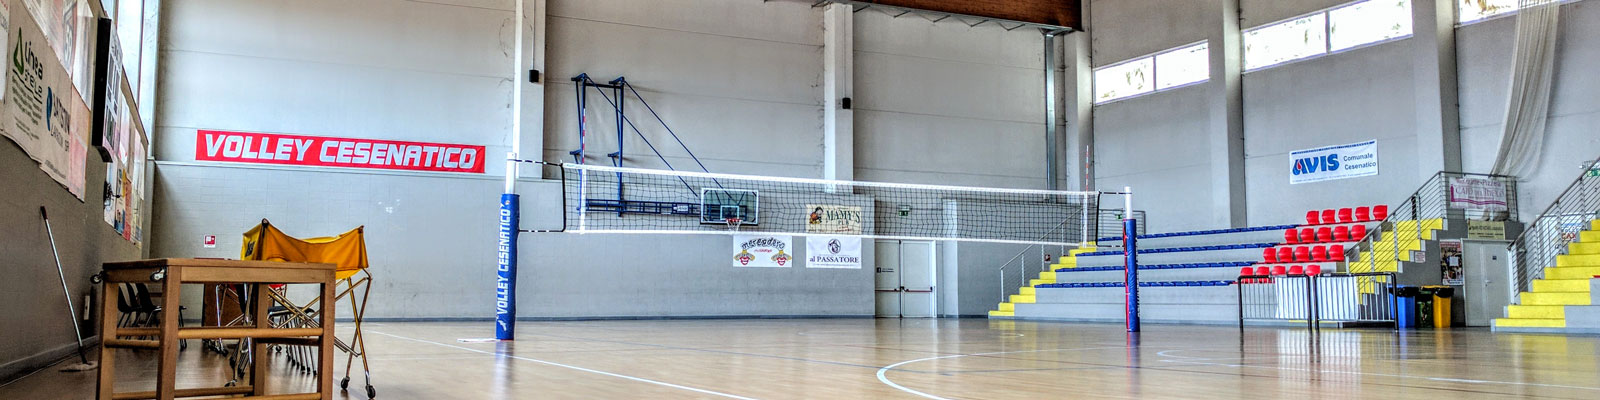 Volley Cesenatico